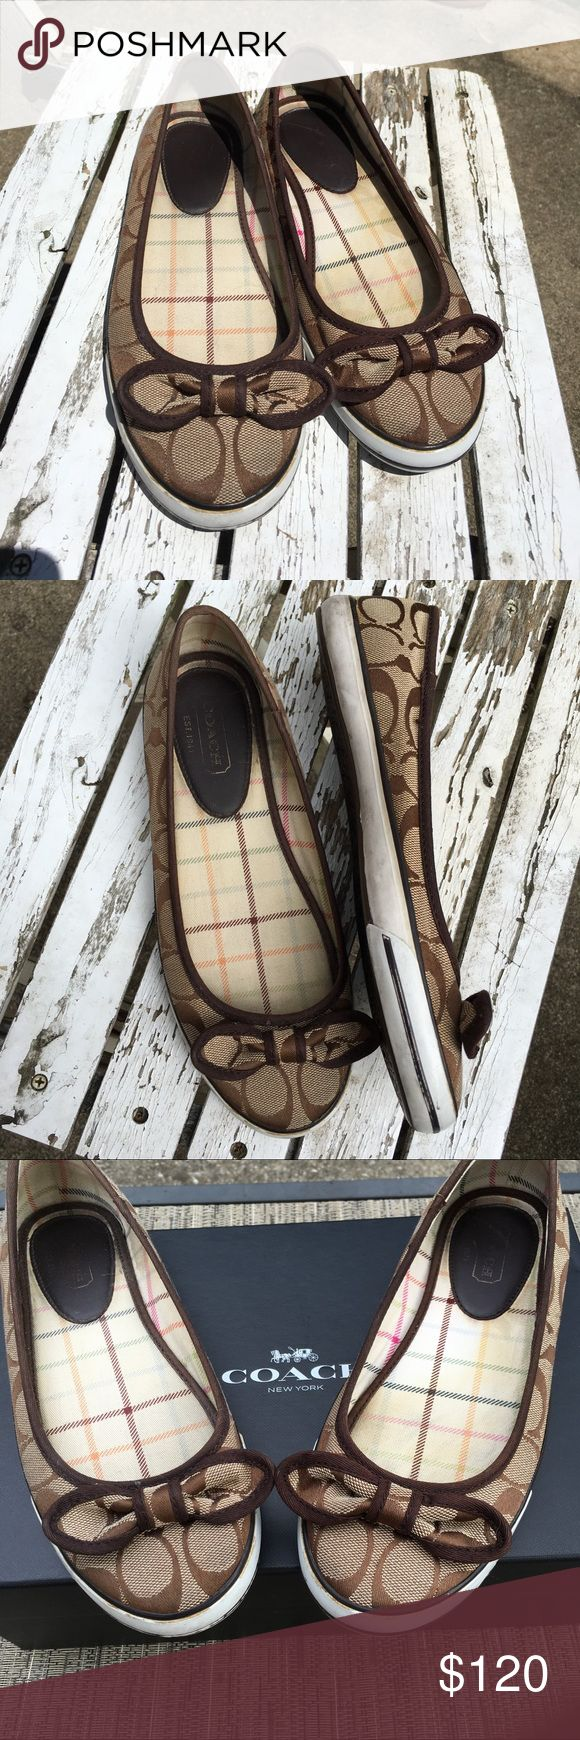 Coach signature in brown, bow, white soles, flat Gorgeous fun, flat signature in brown, tan- ties bow with white soles Coach Shoes Flats & Loafers